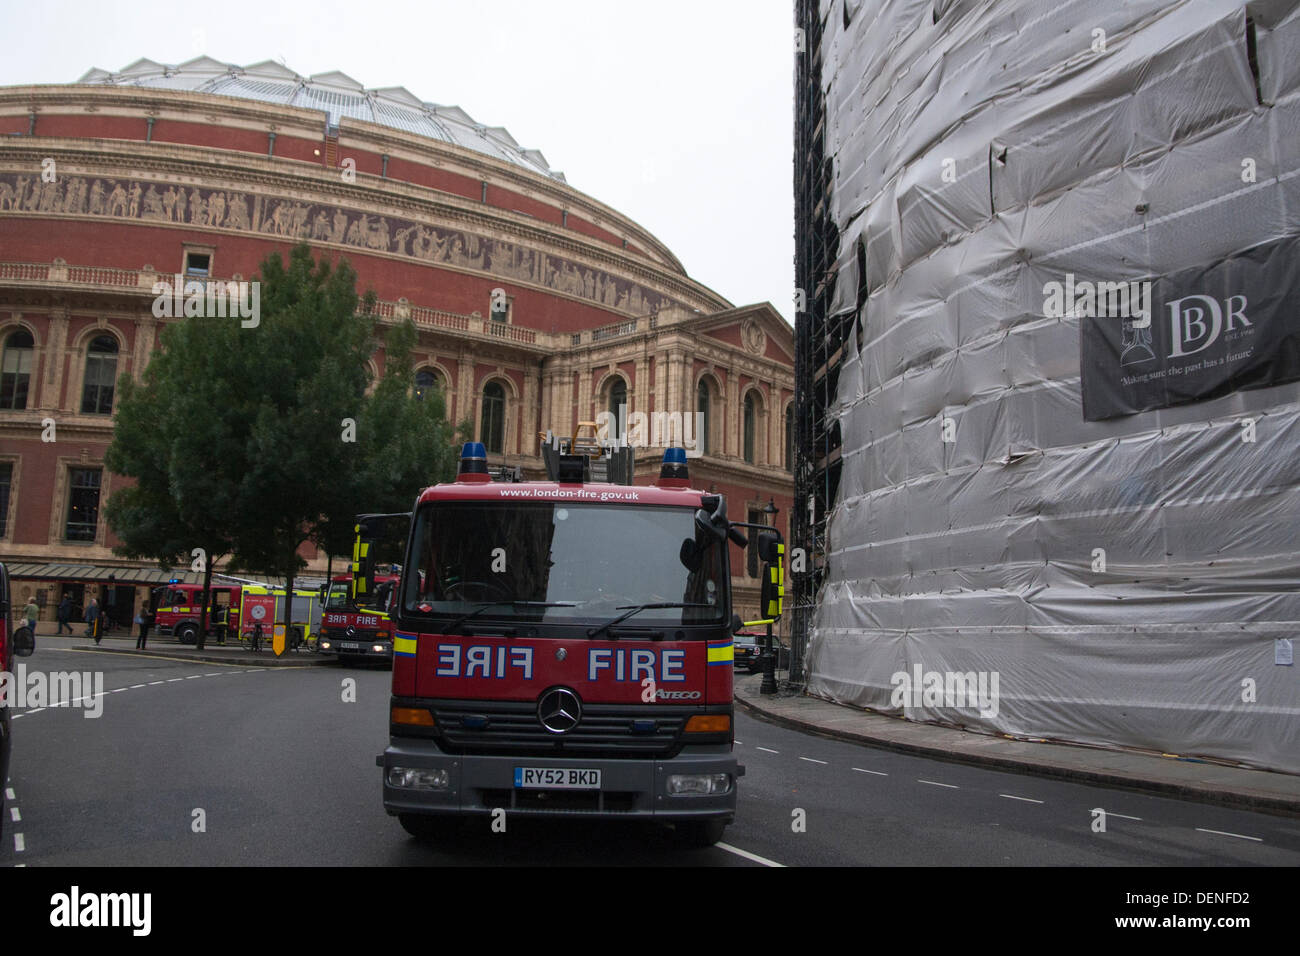 Flat 6 Engine Stock Photos Images Alamy 1986 Porsche Diagram Firefighters Arrived In Under Minutes After